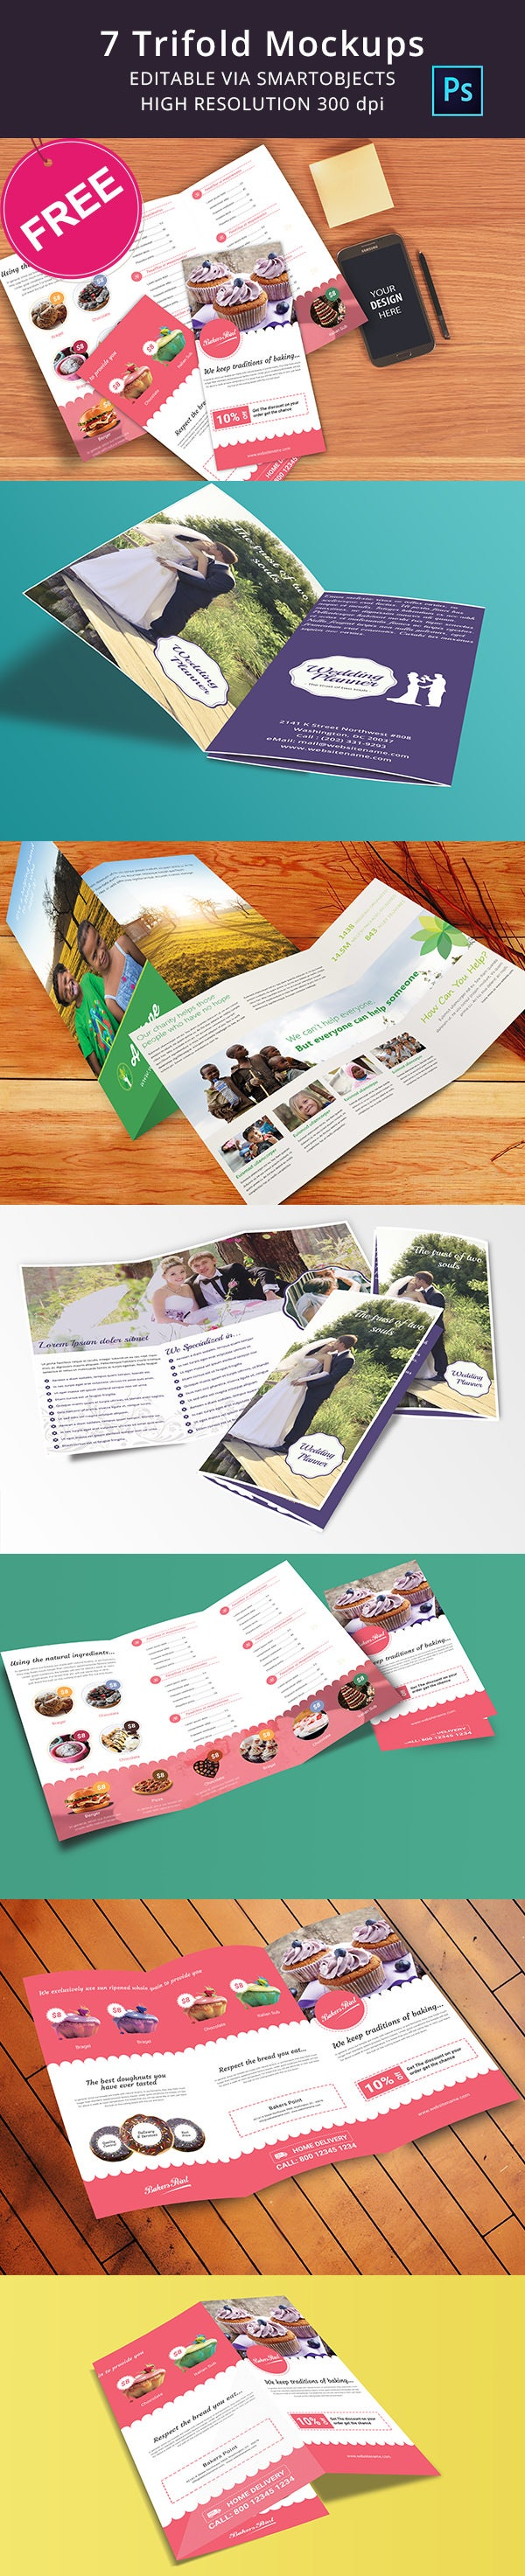 Free Download Tri Fold Mockup Templates